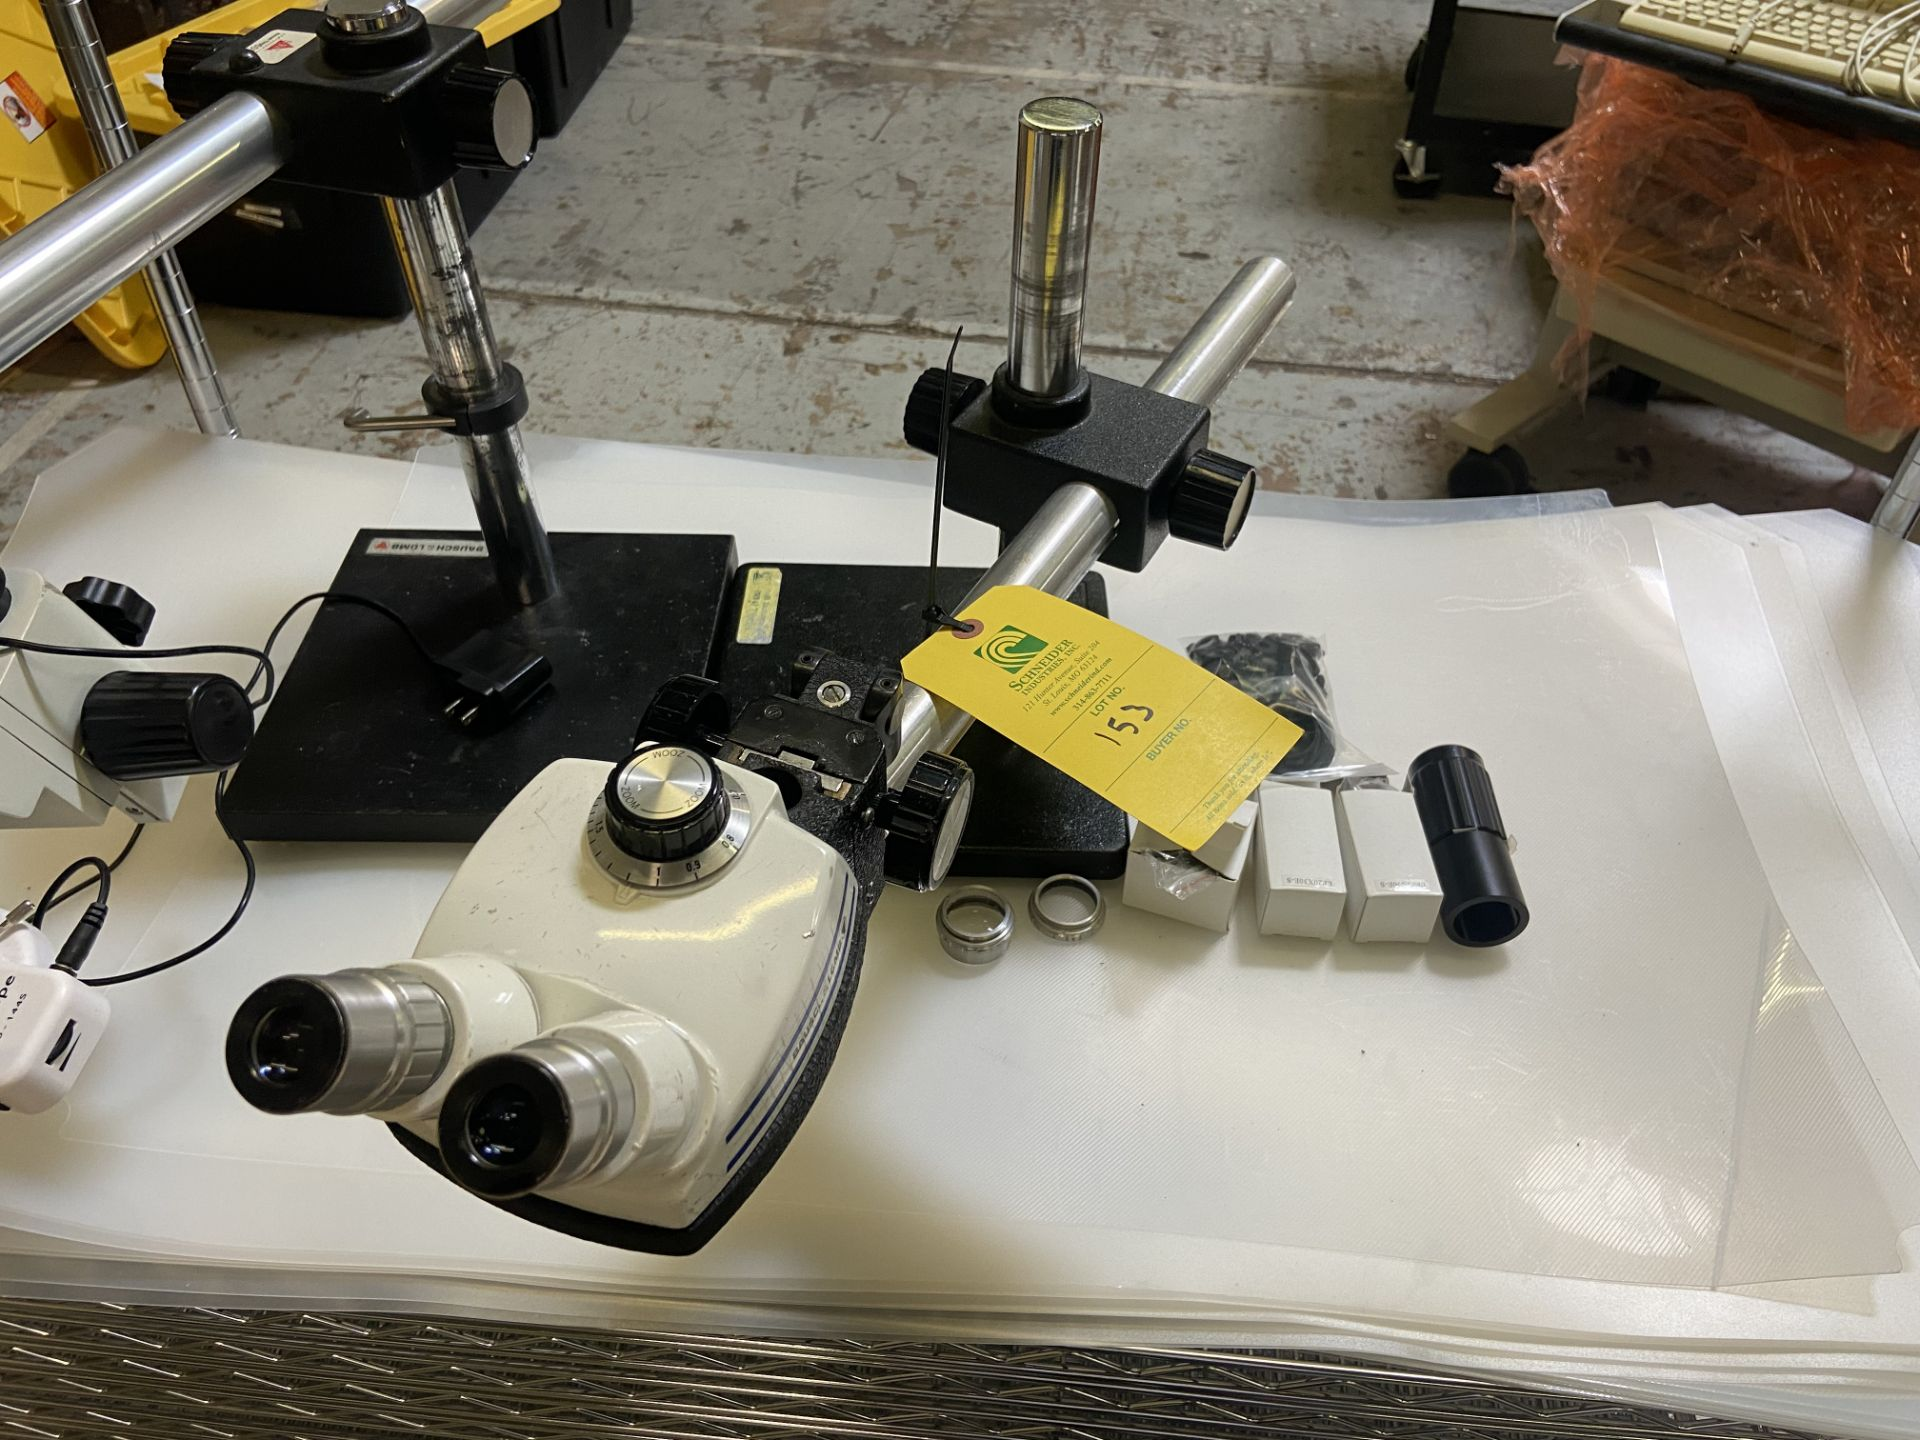 Microscope StereoZoom 4, 0.7X - 30X, Rigging Fee: $20 - Image 2 of 5